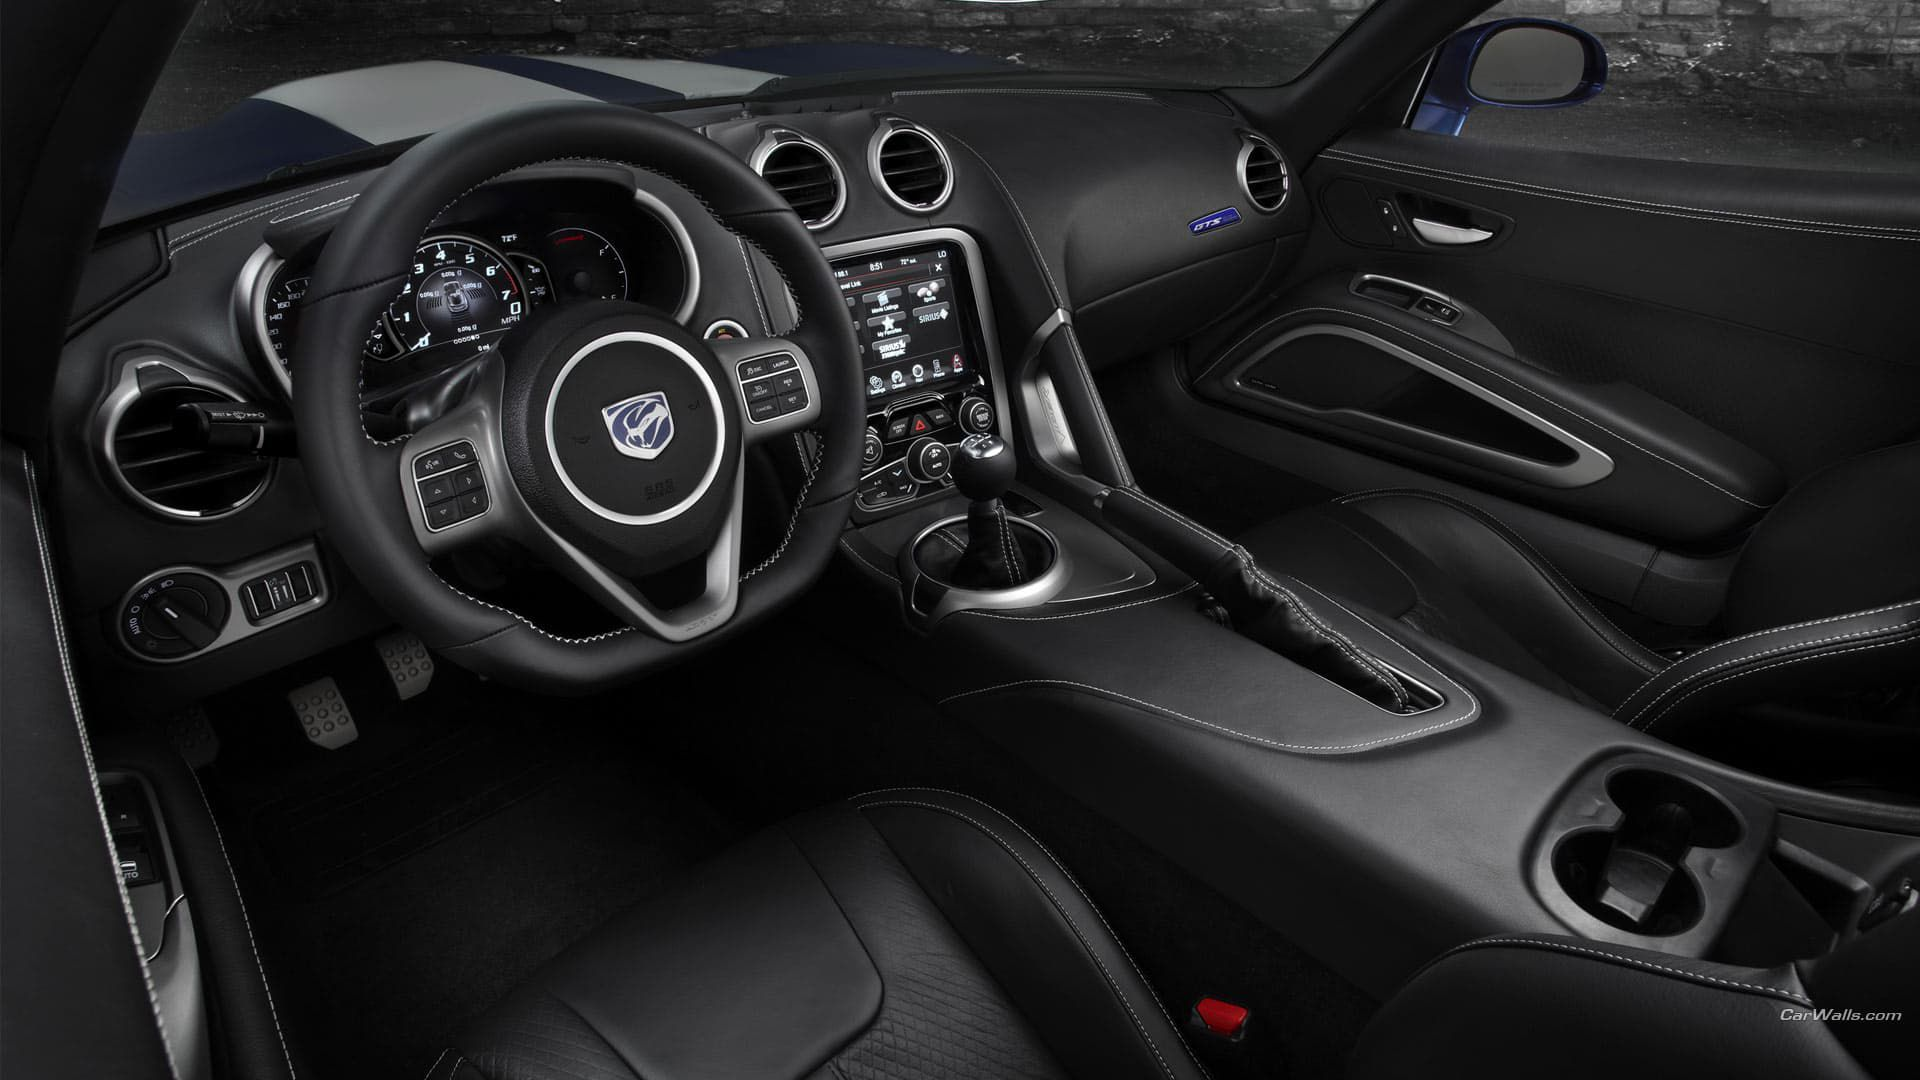 Dodge Viper GTS - black leather interior